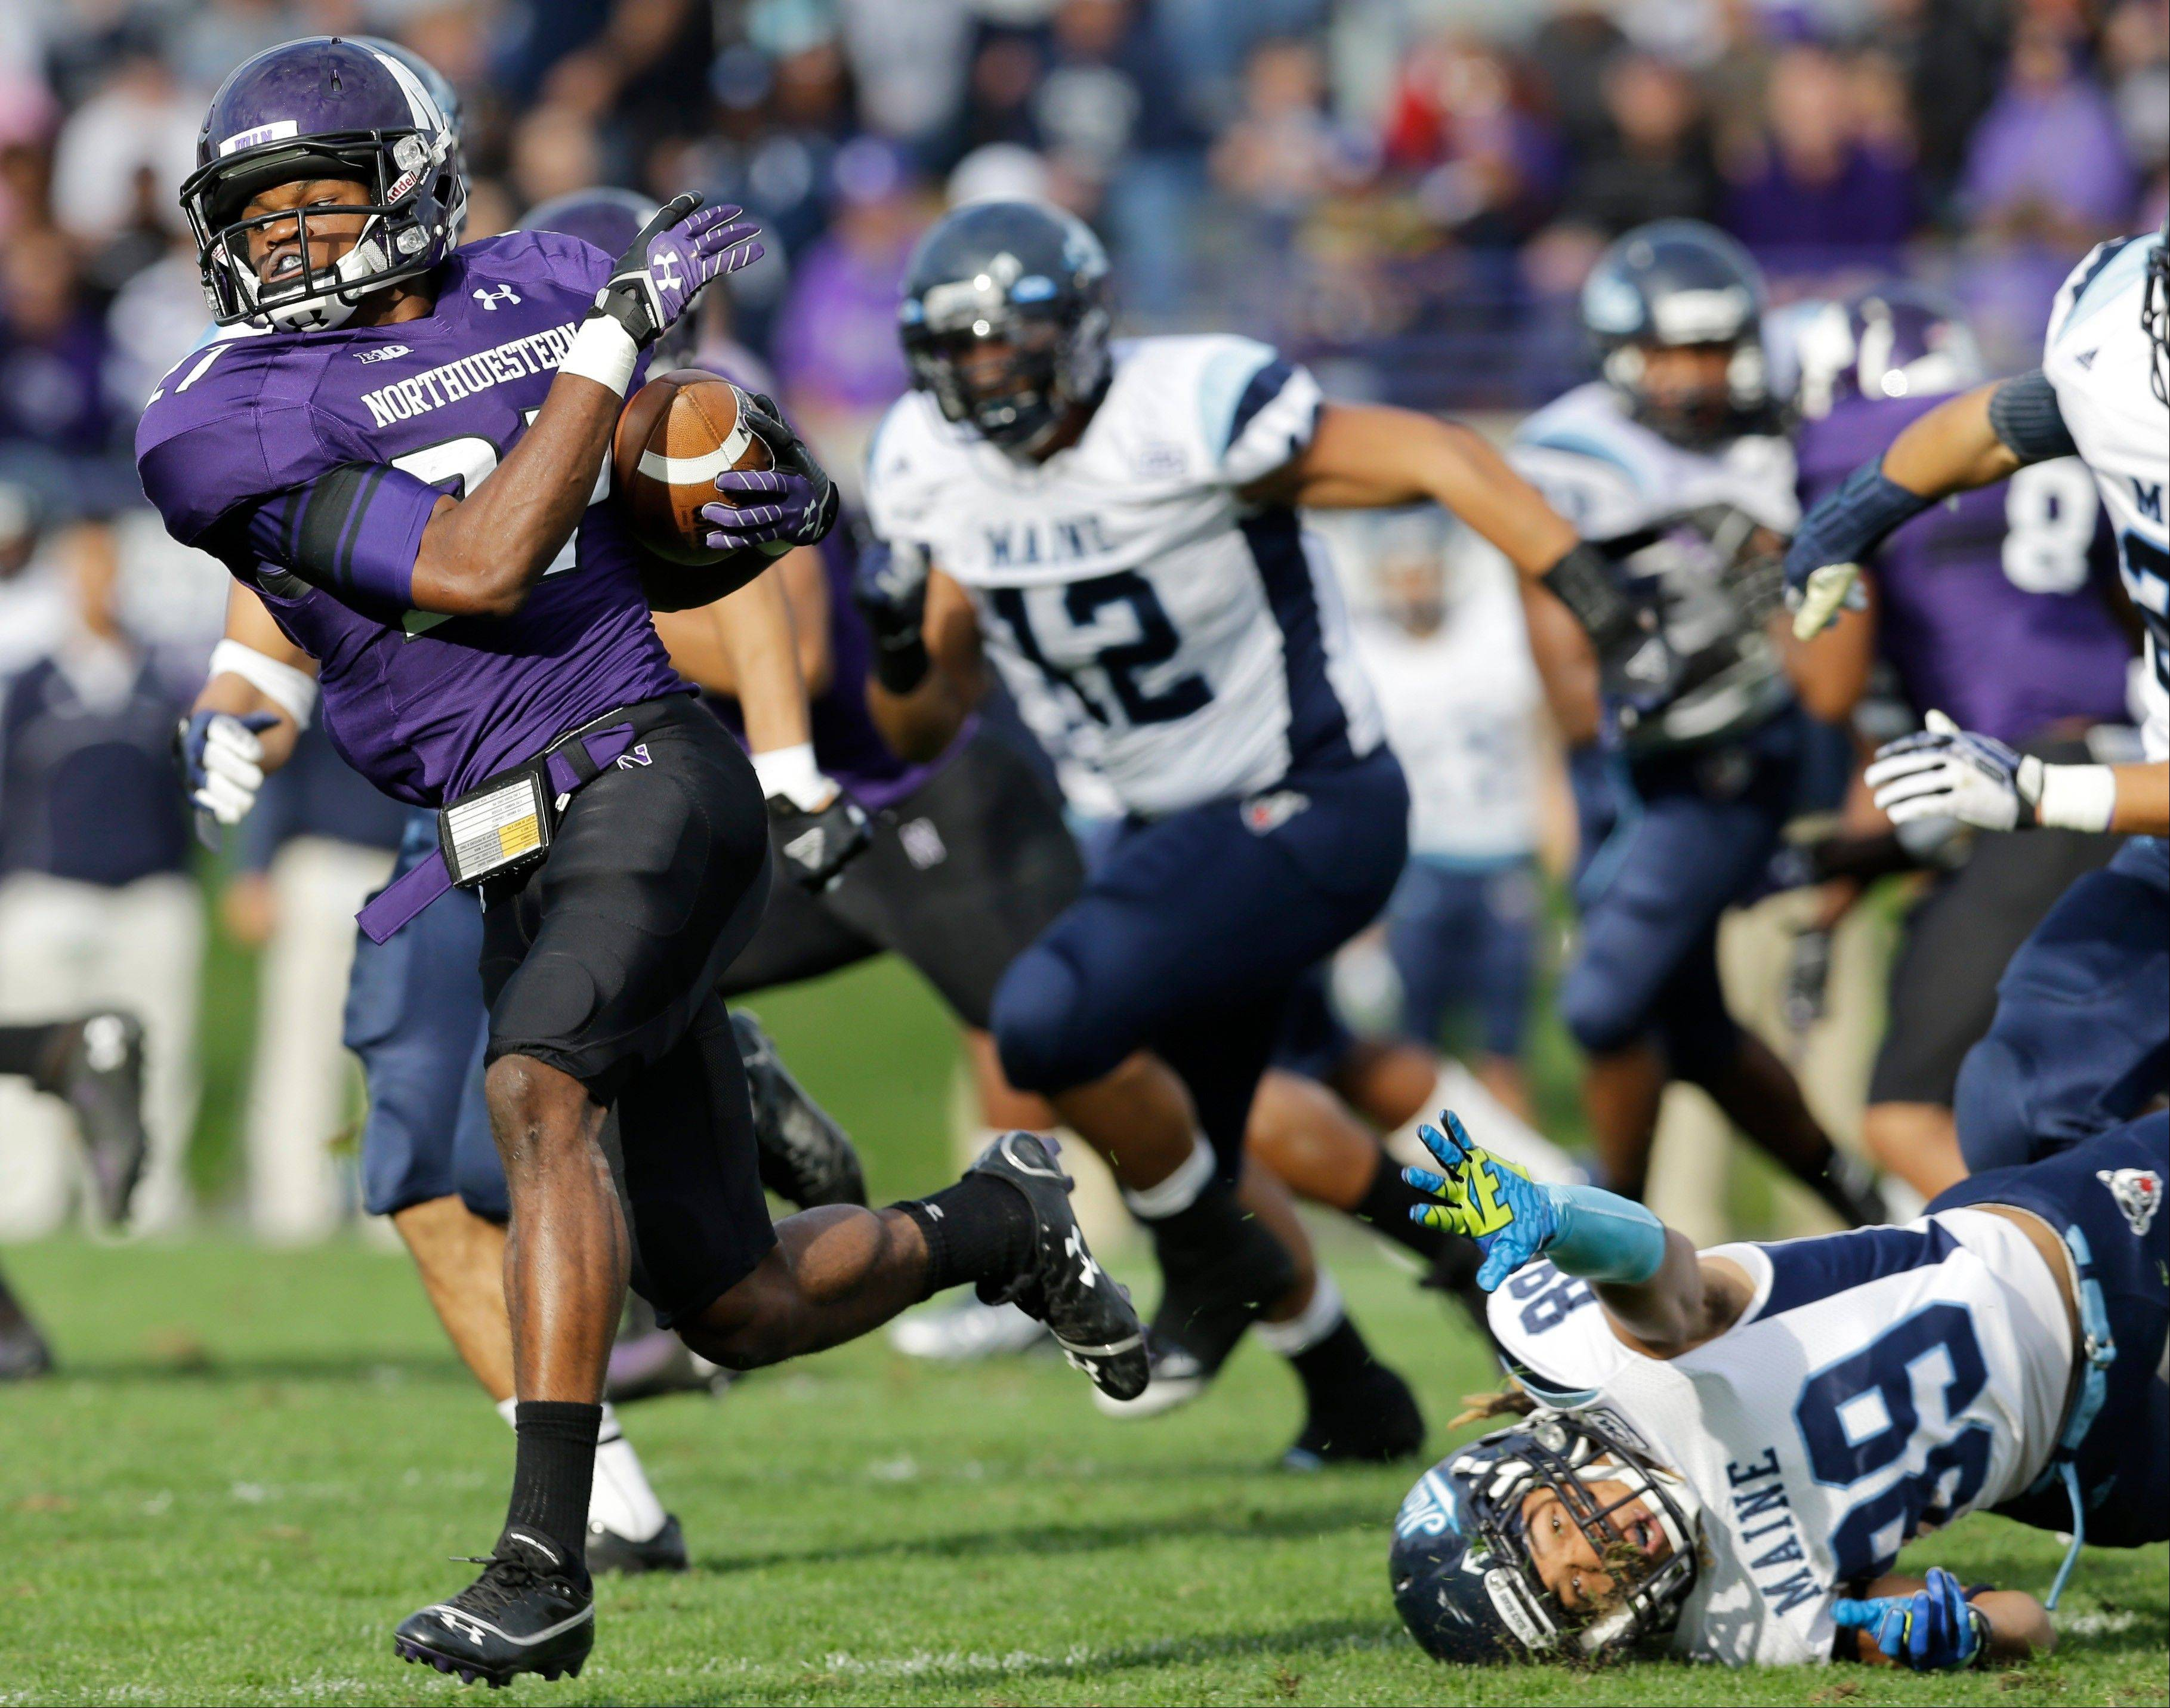 Northwestern cornerback Matthew Harris runs with the ball past Maine wide receiver Arthur Williams (89) during the second half of Saturday�s game in Evanston.